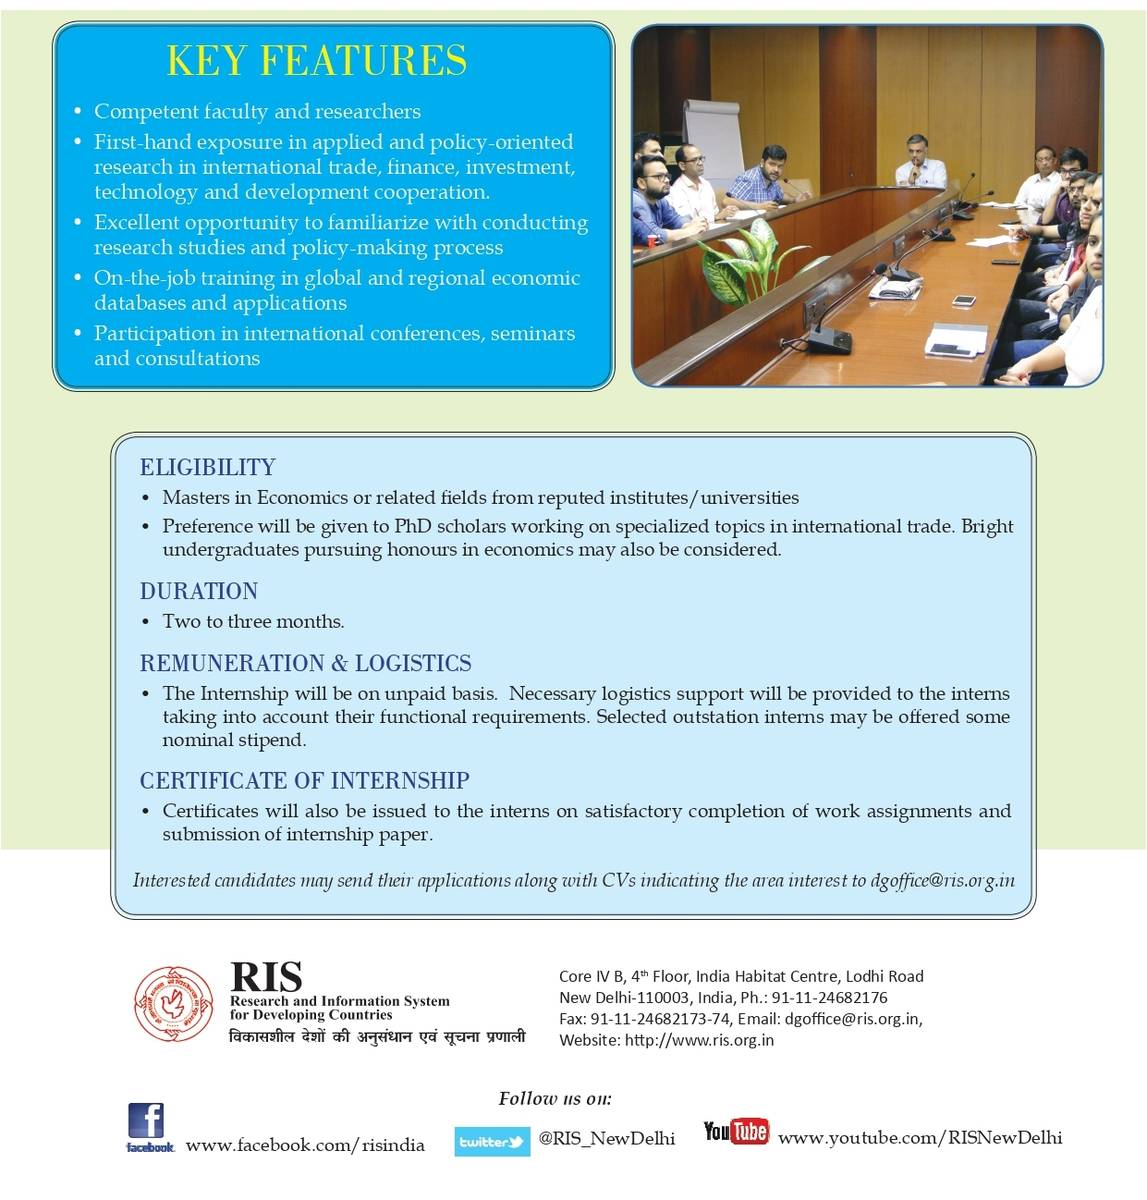 RIS Internship Programme | Research and Information System